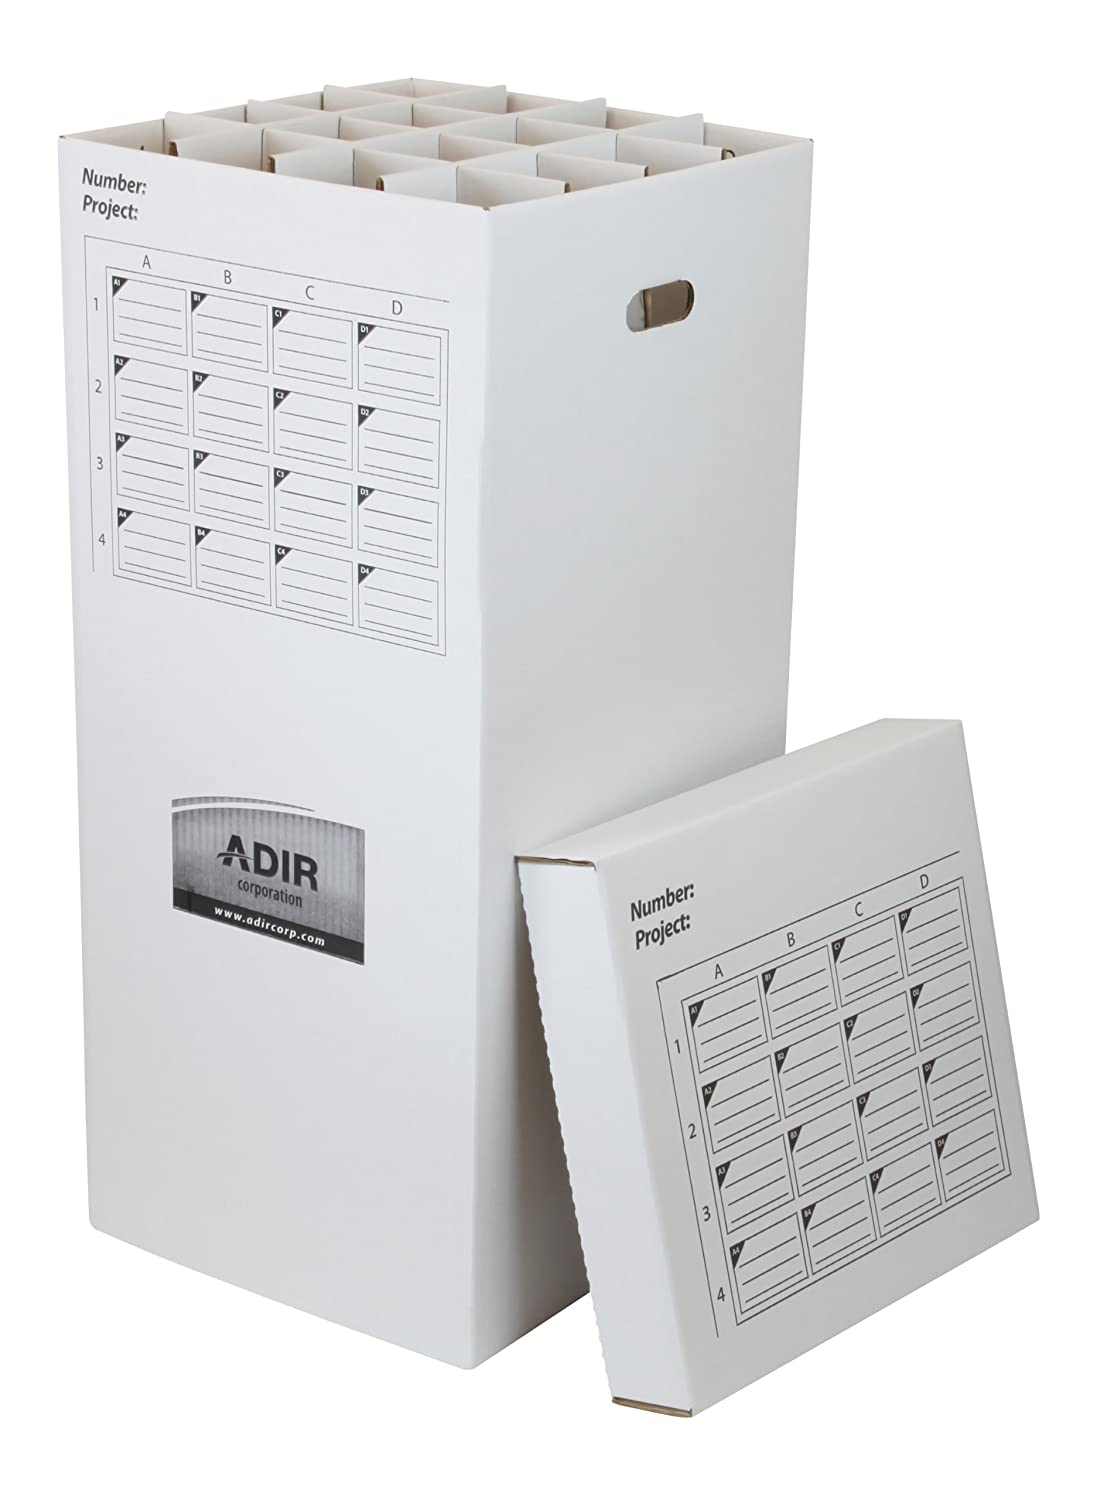 Amazon adir corrugated cardboard 16 roll file for rolls up to amazon adir corrugated cardboard 16 roll file for rolls up to 37 inches long upright storage cabinet kitchen dining malvernweather Image collections